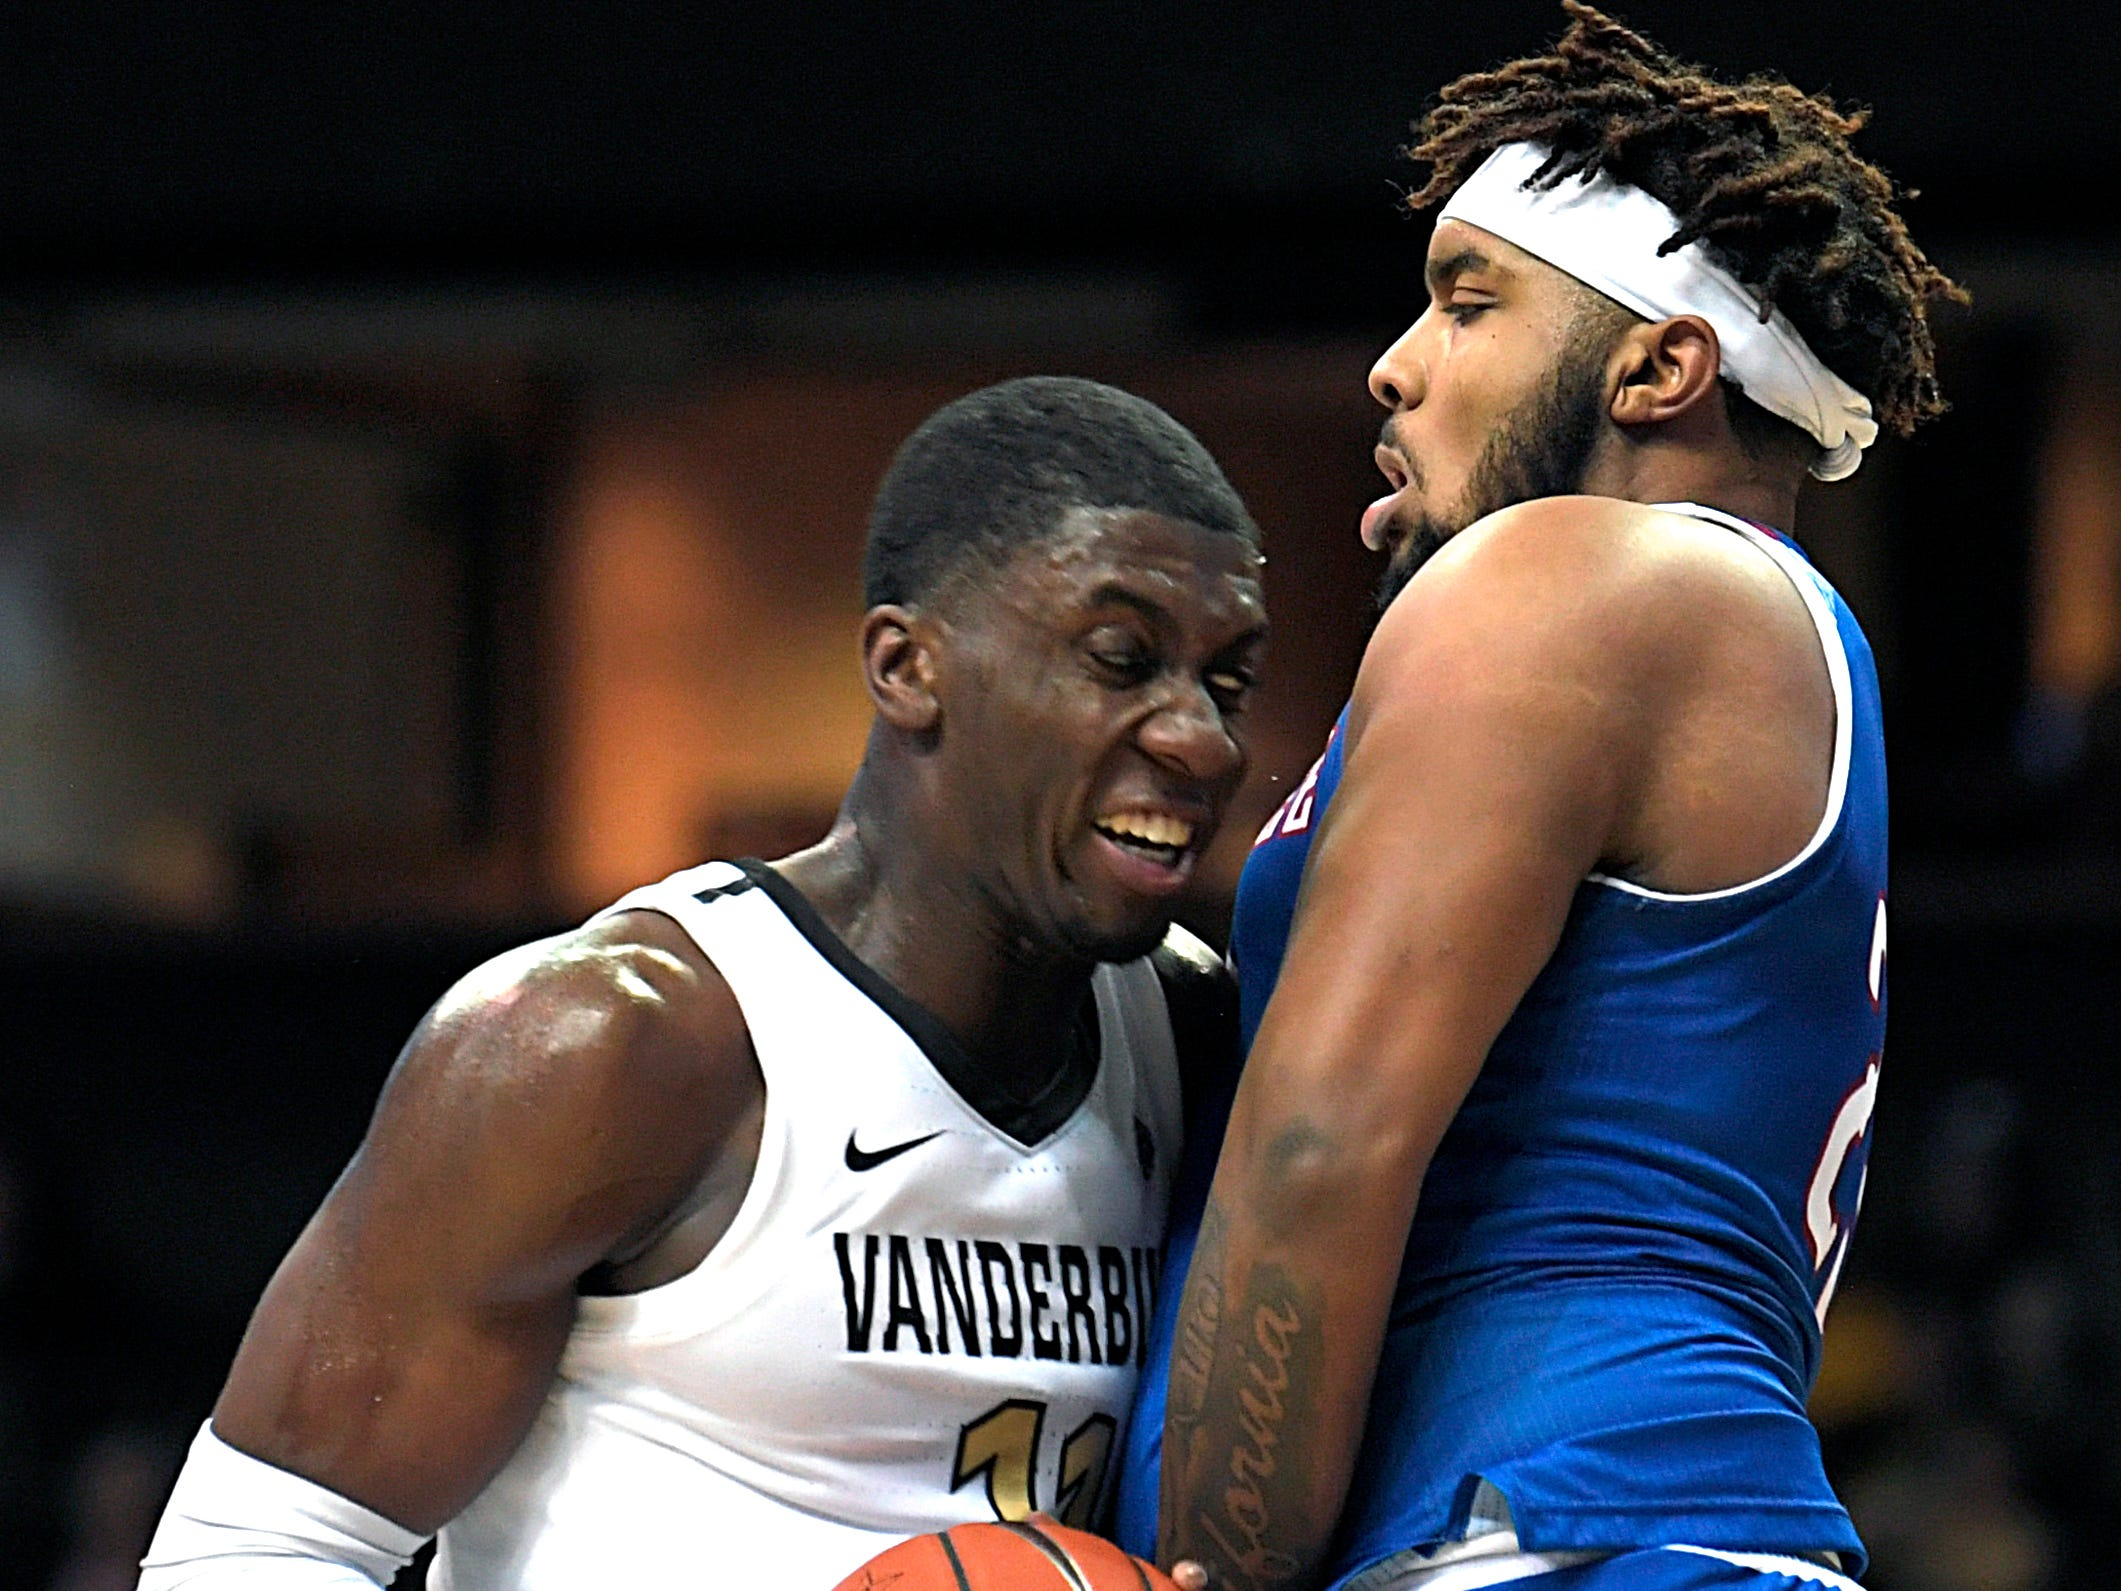 Vanderbilt forward Simisola Shittu (11) drives to the basket and is stopped by Tennessee State forward DaJion Henderson (23) during a game at Memorial Gym in Nashville on Saturday, Dec. 29, 2018.